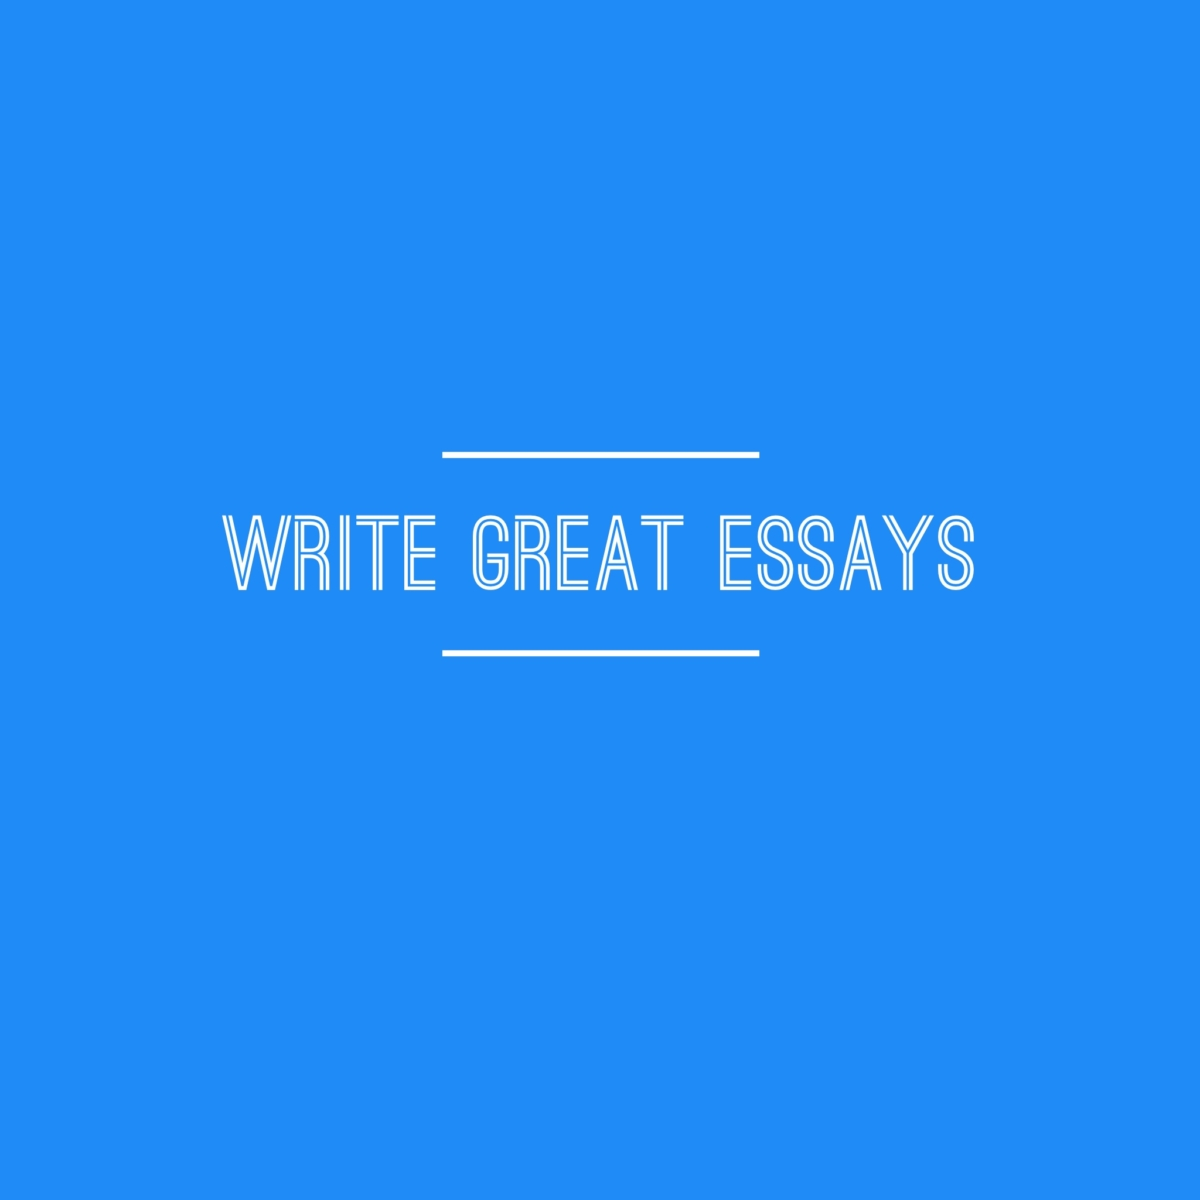 university of chicago essay prompts 2012